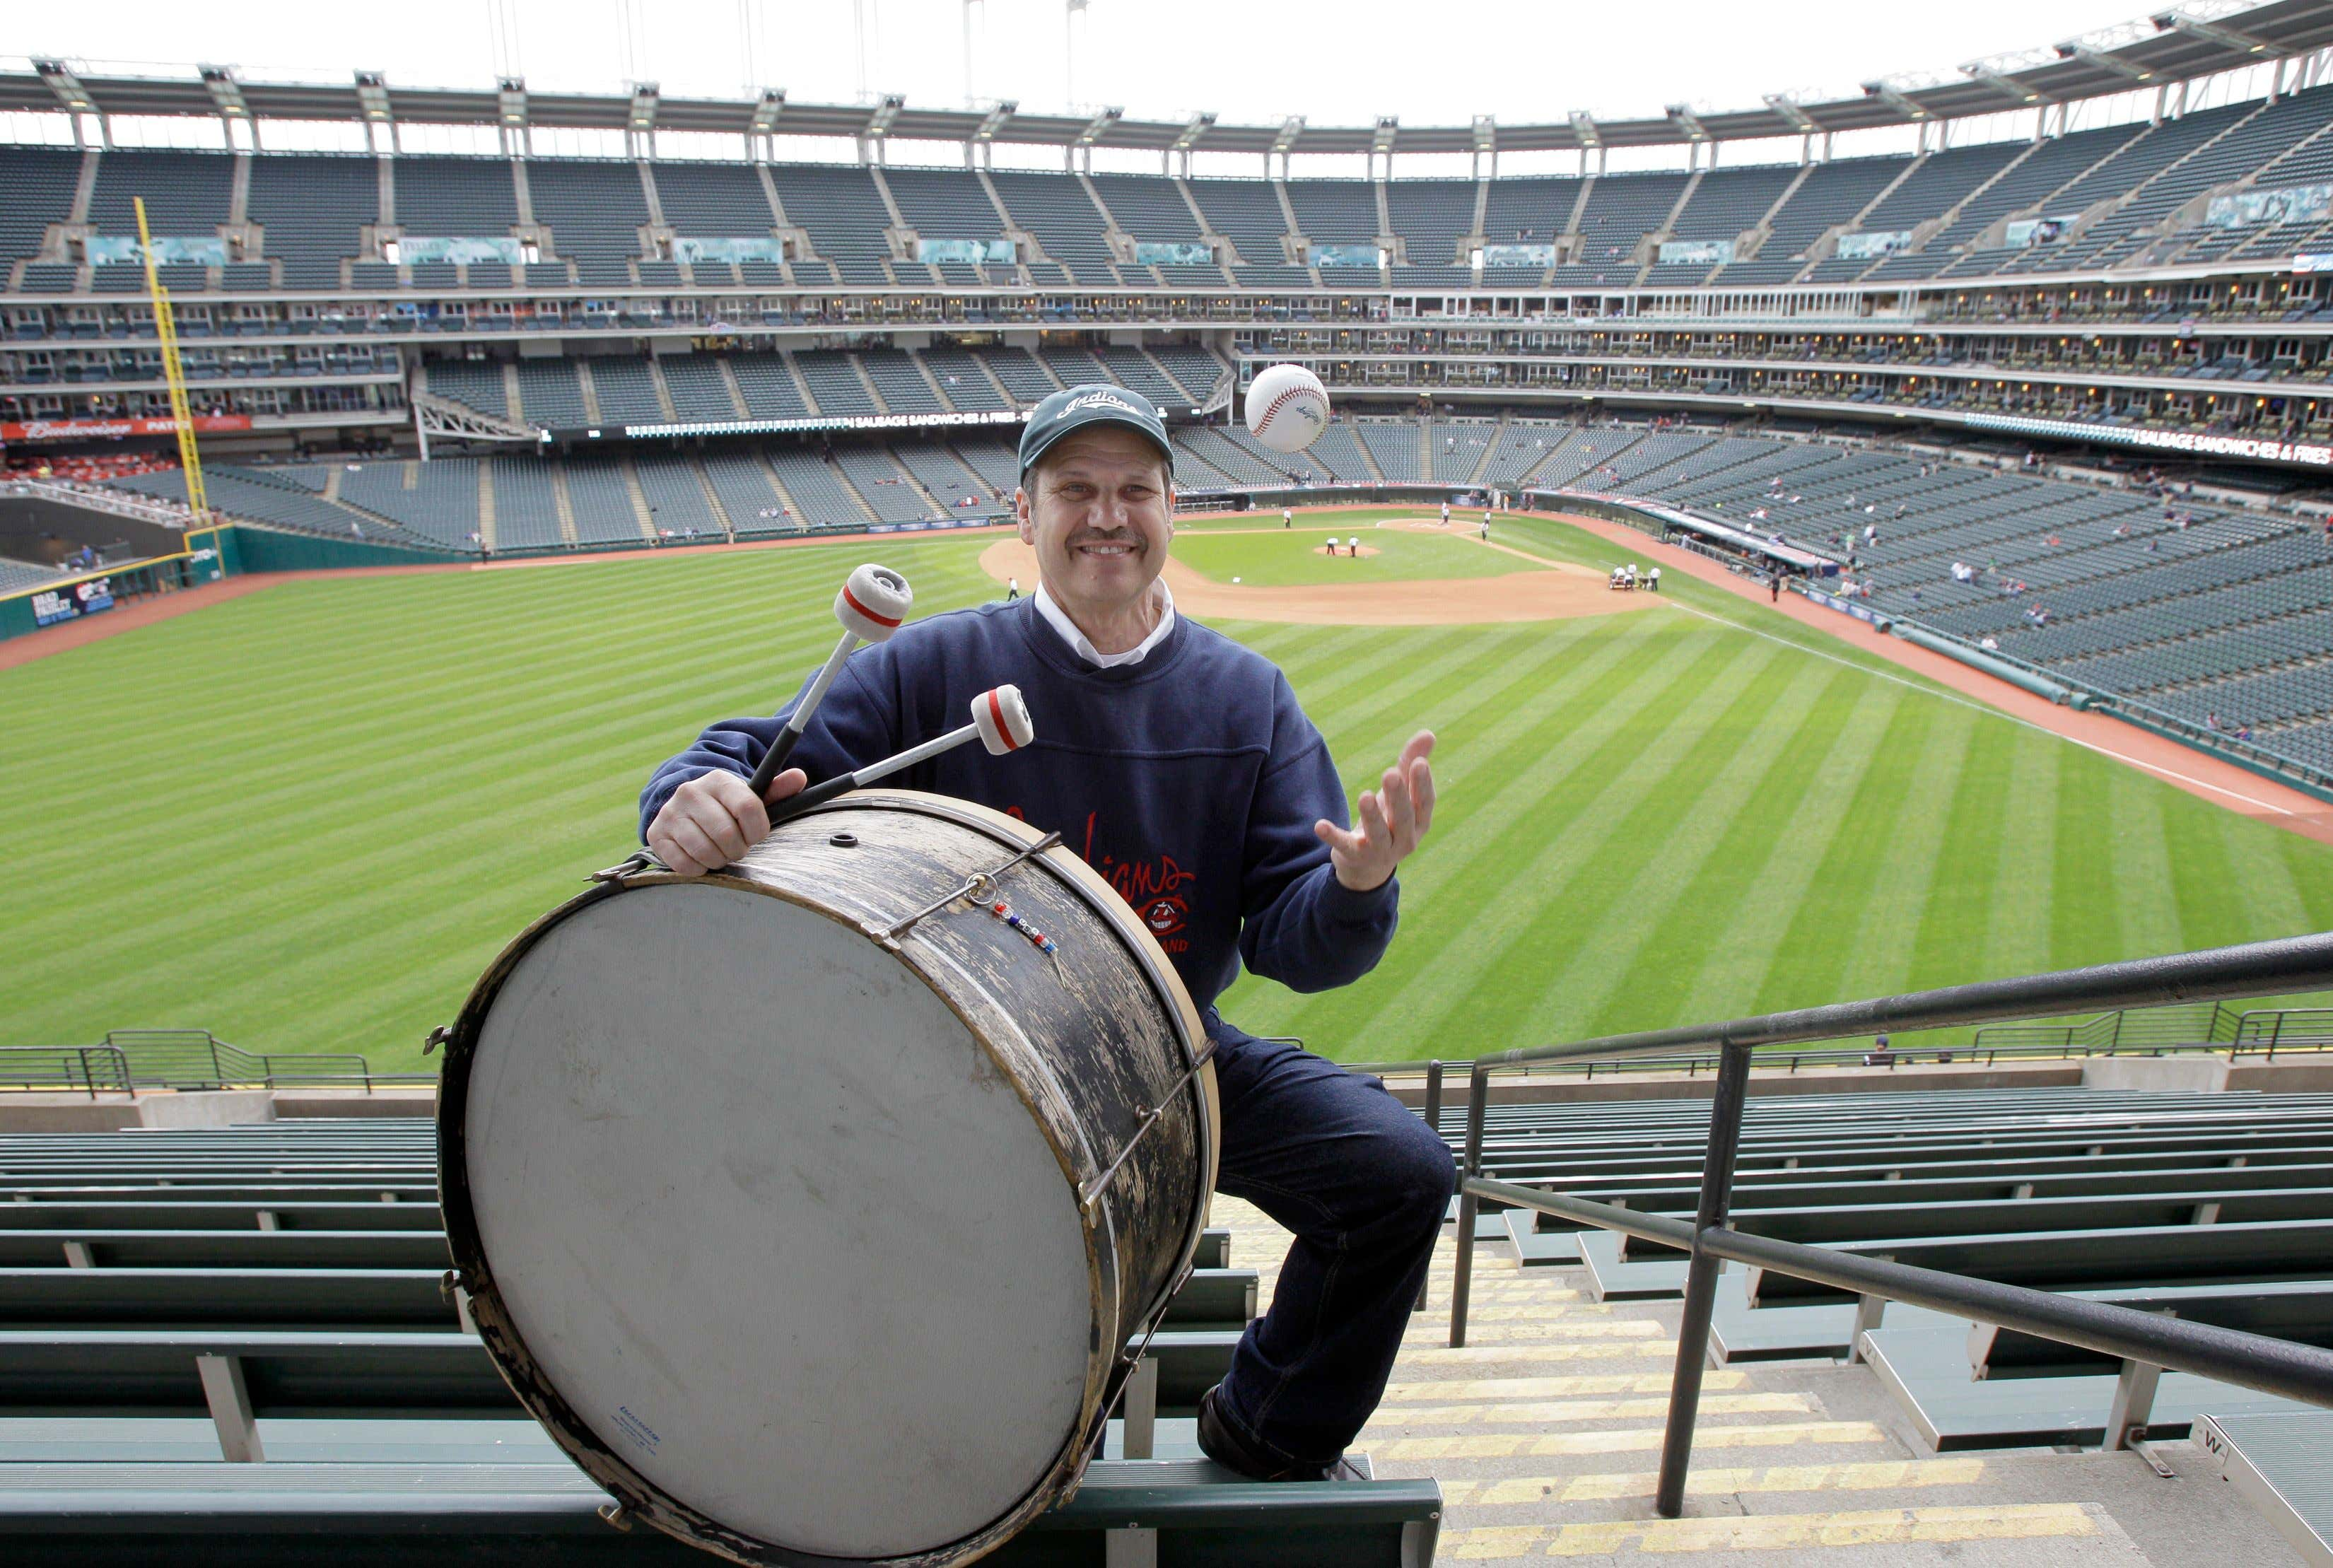 Cleveland Indians fan John Adams poses in his usual centerfield bleacher seat with his ever-present bass drum before a baseball game between the Indians and the Kansas City Royals in Cleveland. Adams, who will miss his first home opener since 1955 on Friday due to the coronavirus, has been keeping the beat for the Indians since 1973. AP Photo/Amy Sancetta, File